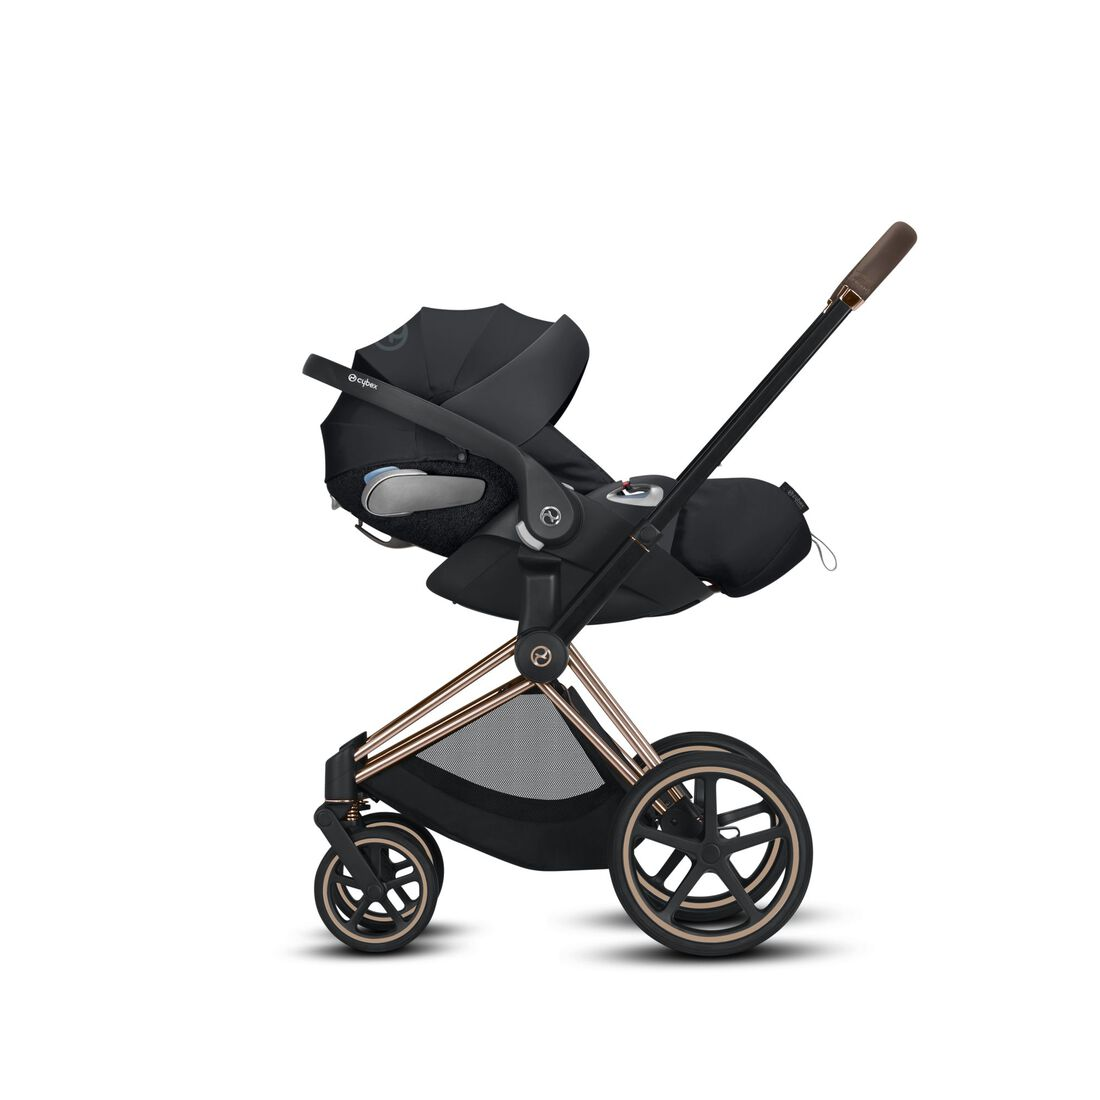 CYBEX PRIAM 2in1 Seat Functions